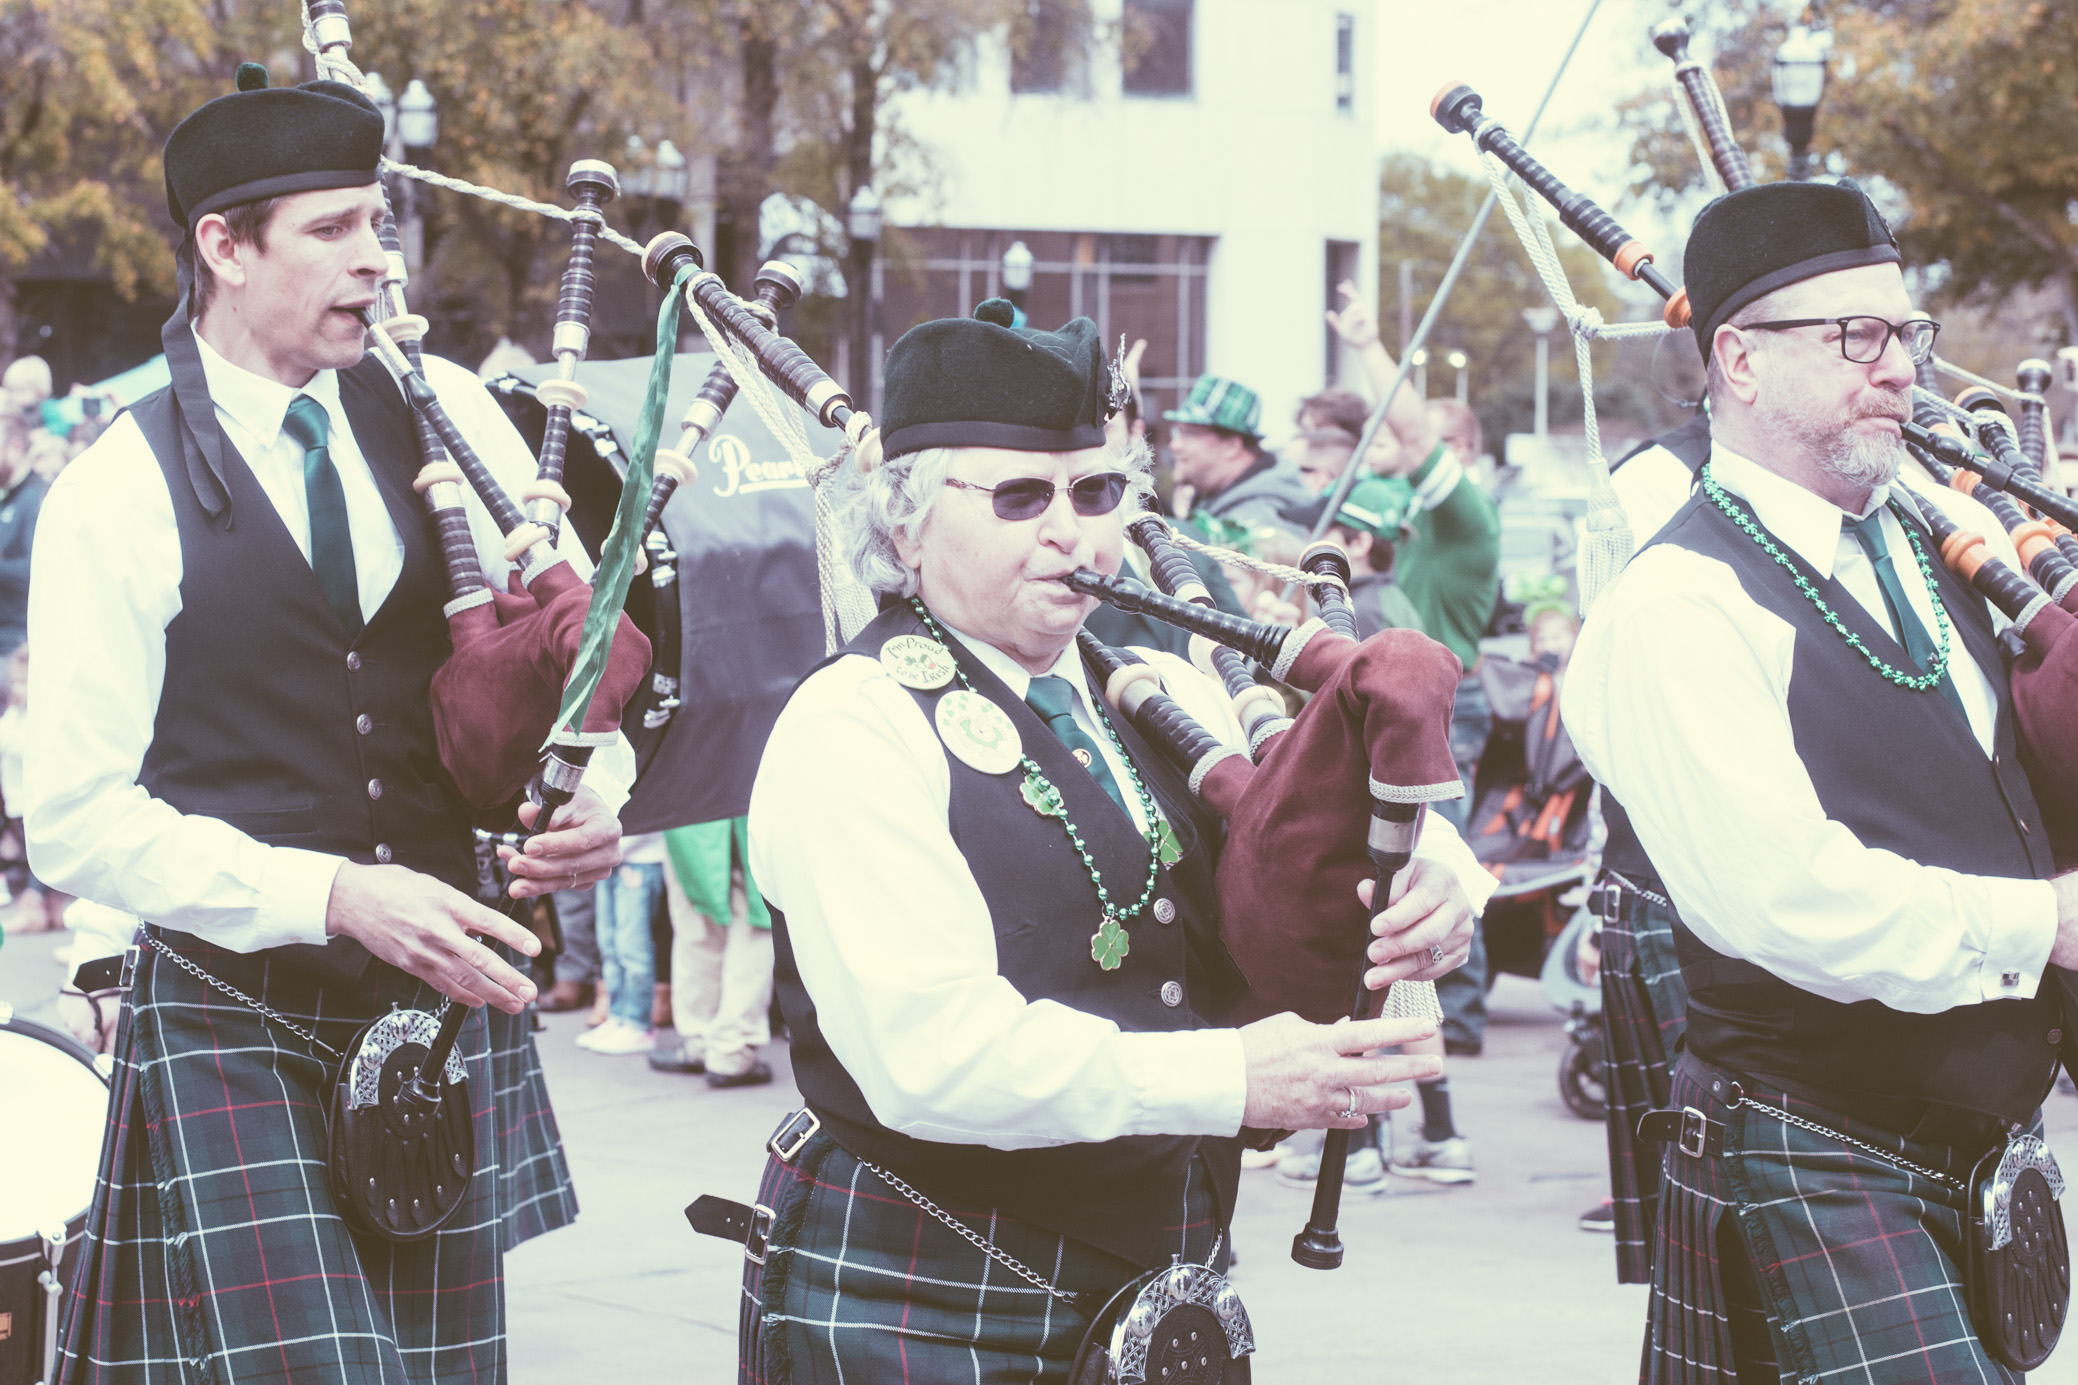 A photograph from the 5 Points South St. Patrick's Day Parade, which took place in Birmingham, Alabama on March 16th, 2019. (Photo by David A. Smith / DSmithScenes)